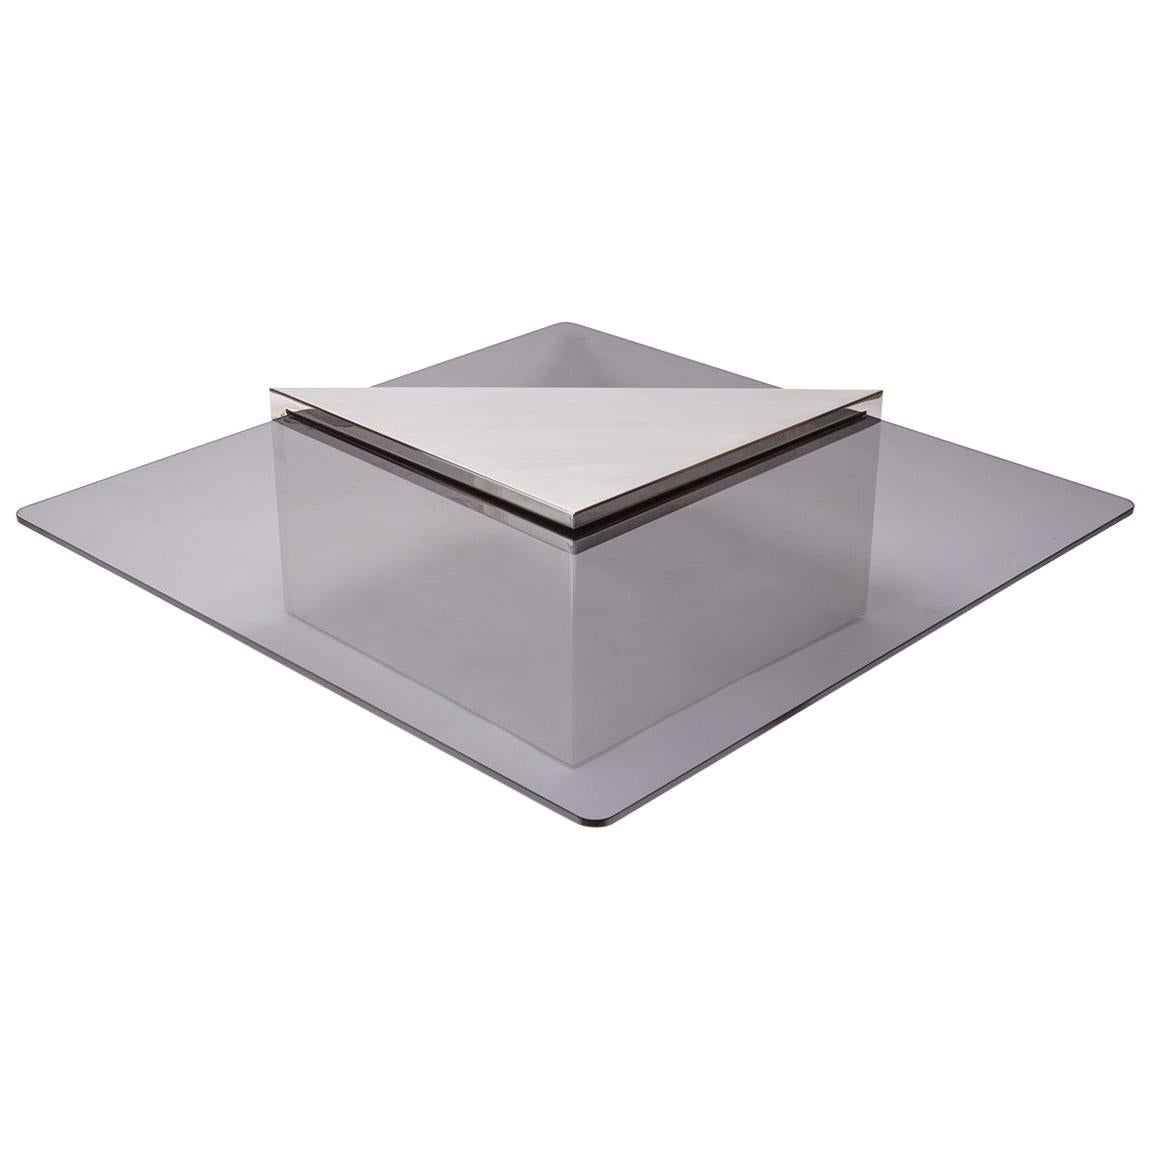 Brueton Cantilevered Glass and Polished Steel Coffee Table